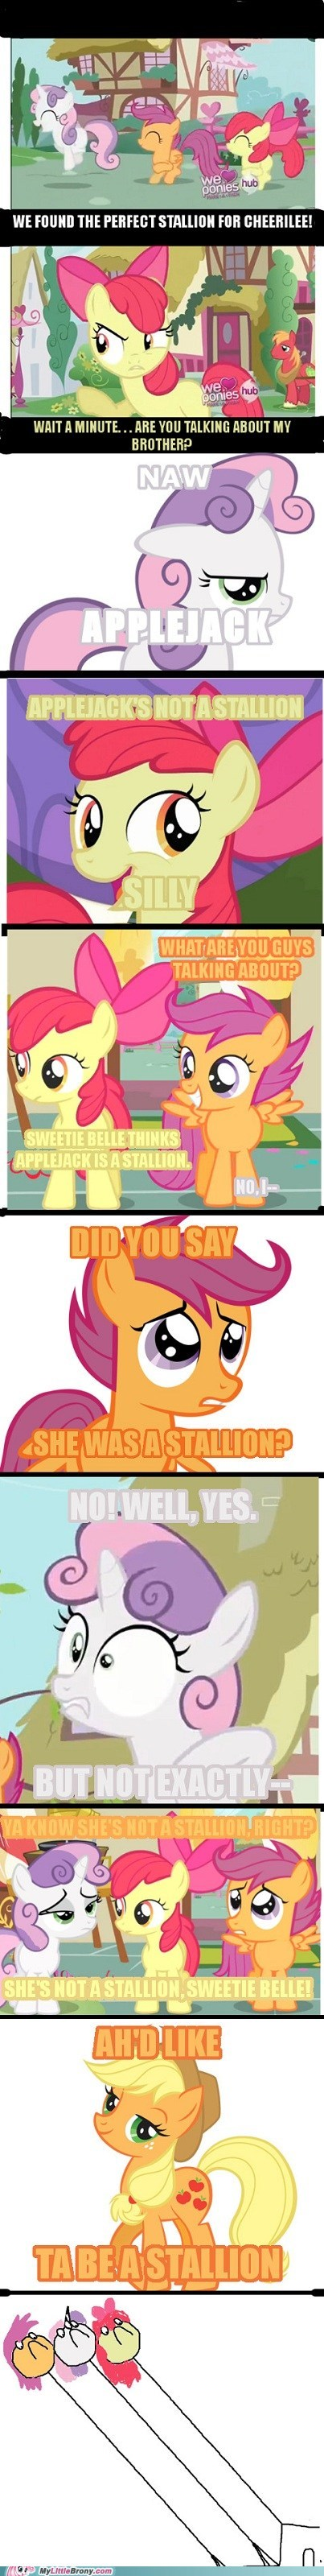 applejack,comic,comics,cutie mark crusaders,stallion